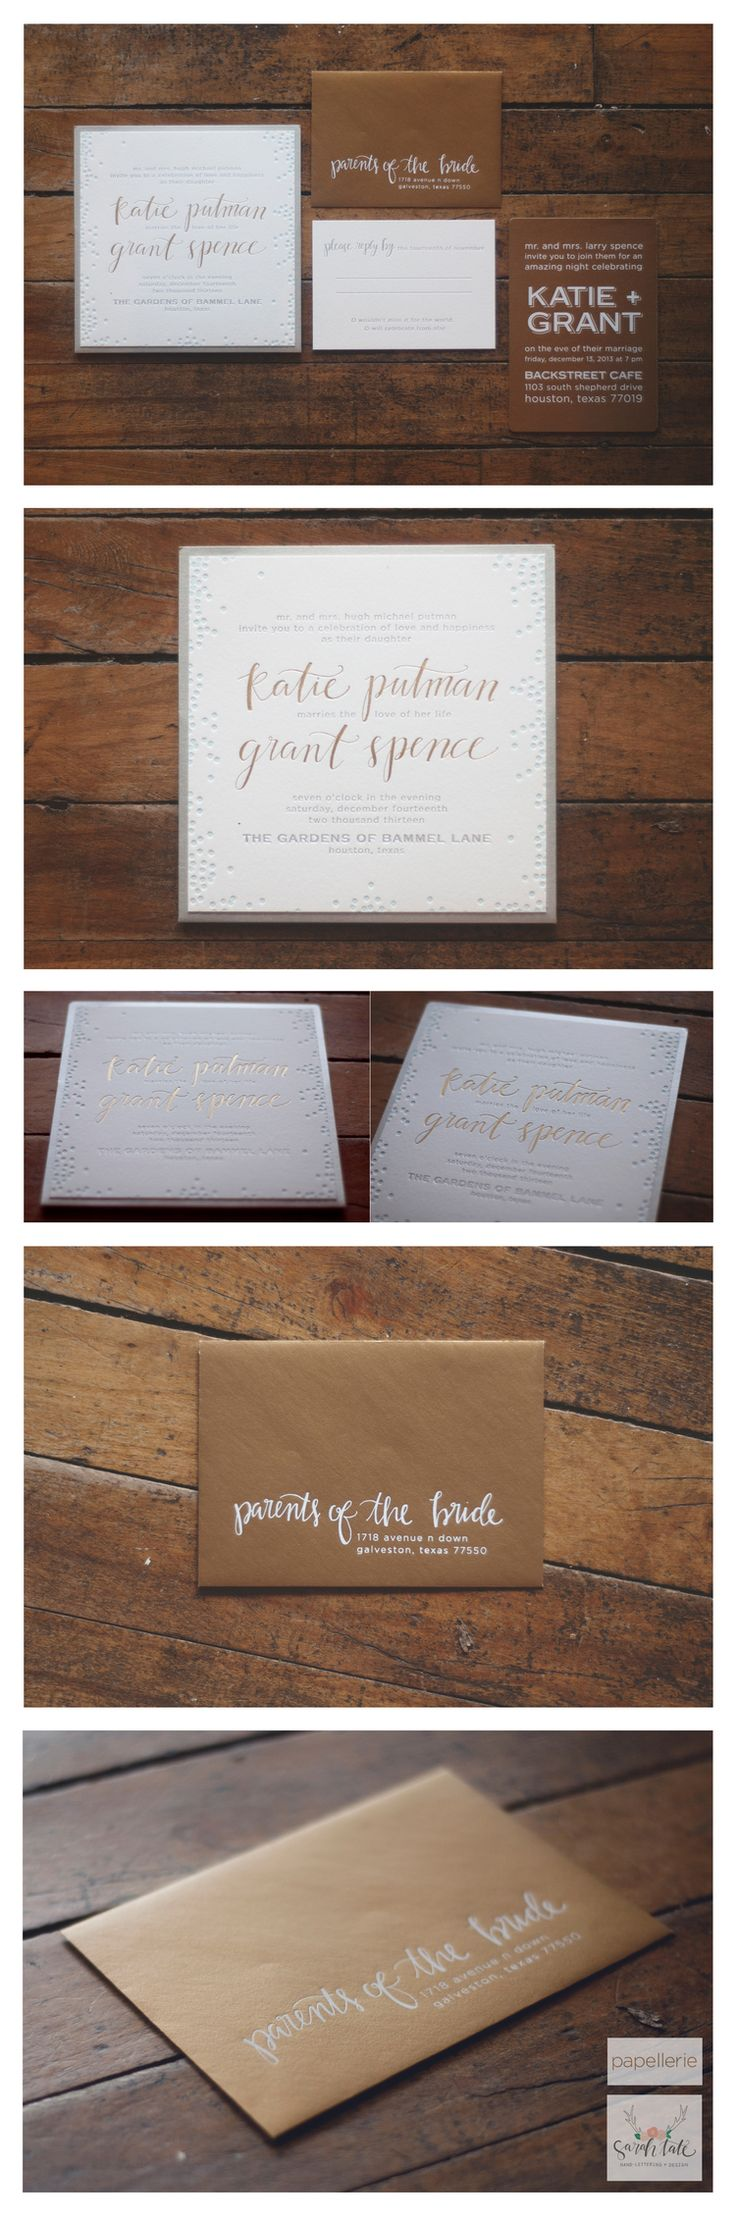 katie and grant's invitation | designed by #papellerie | calligraphy and lettering by sarah tate